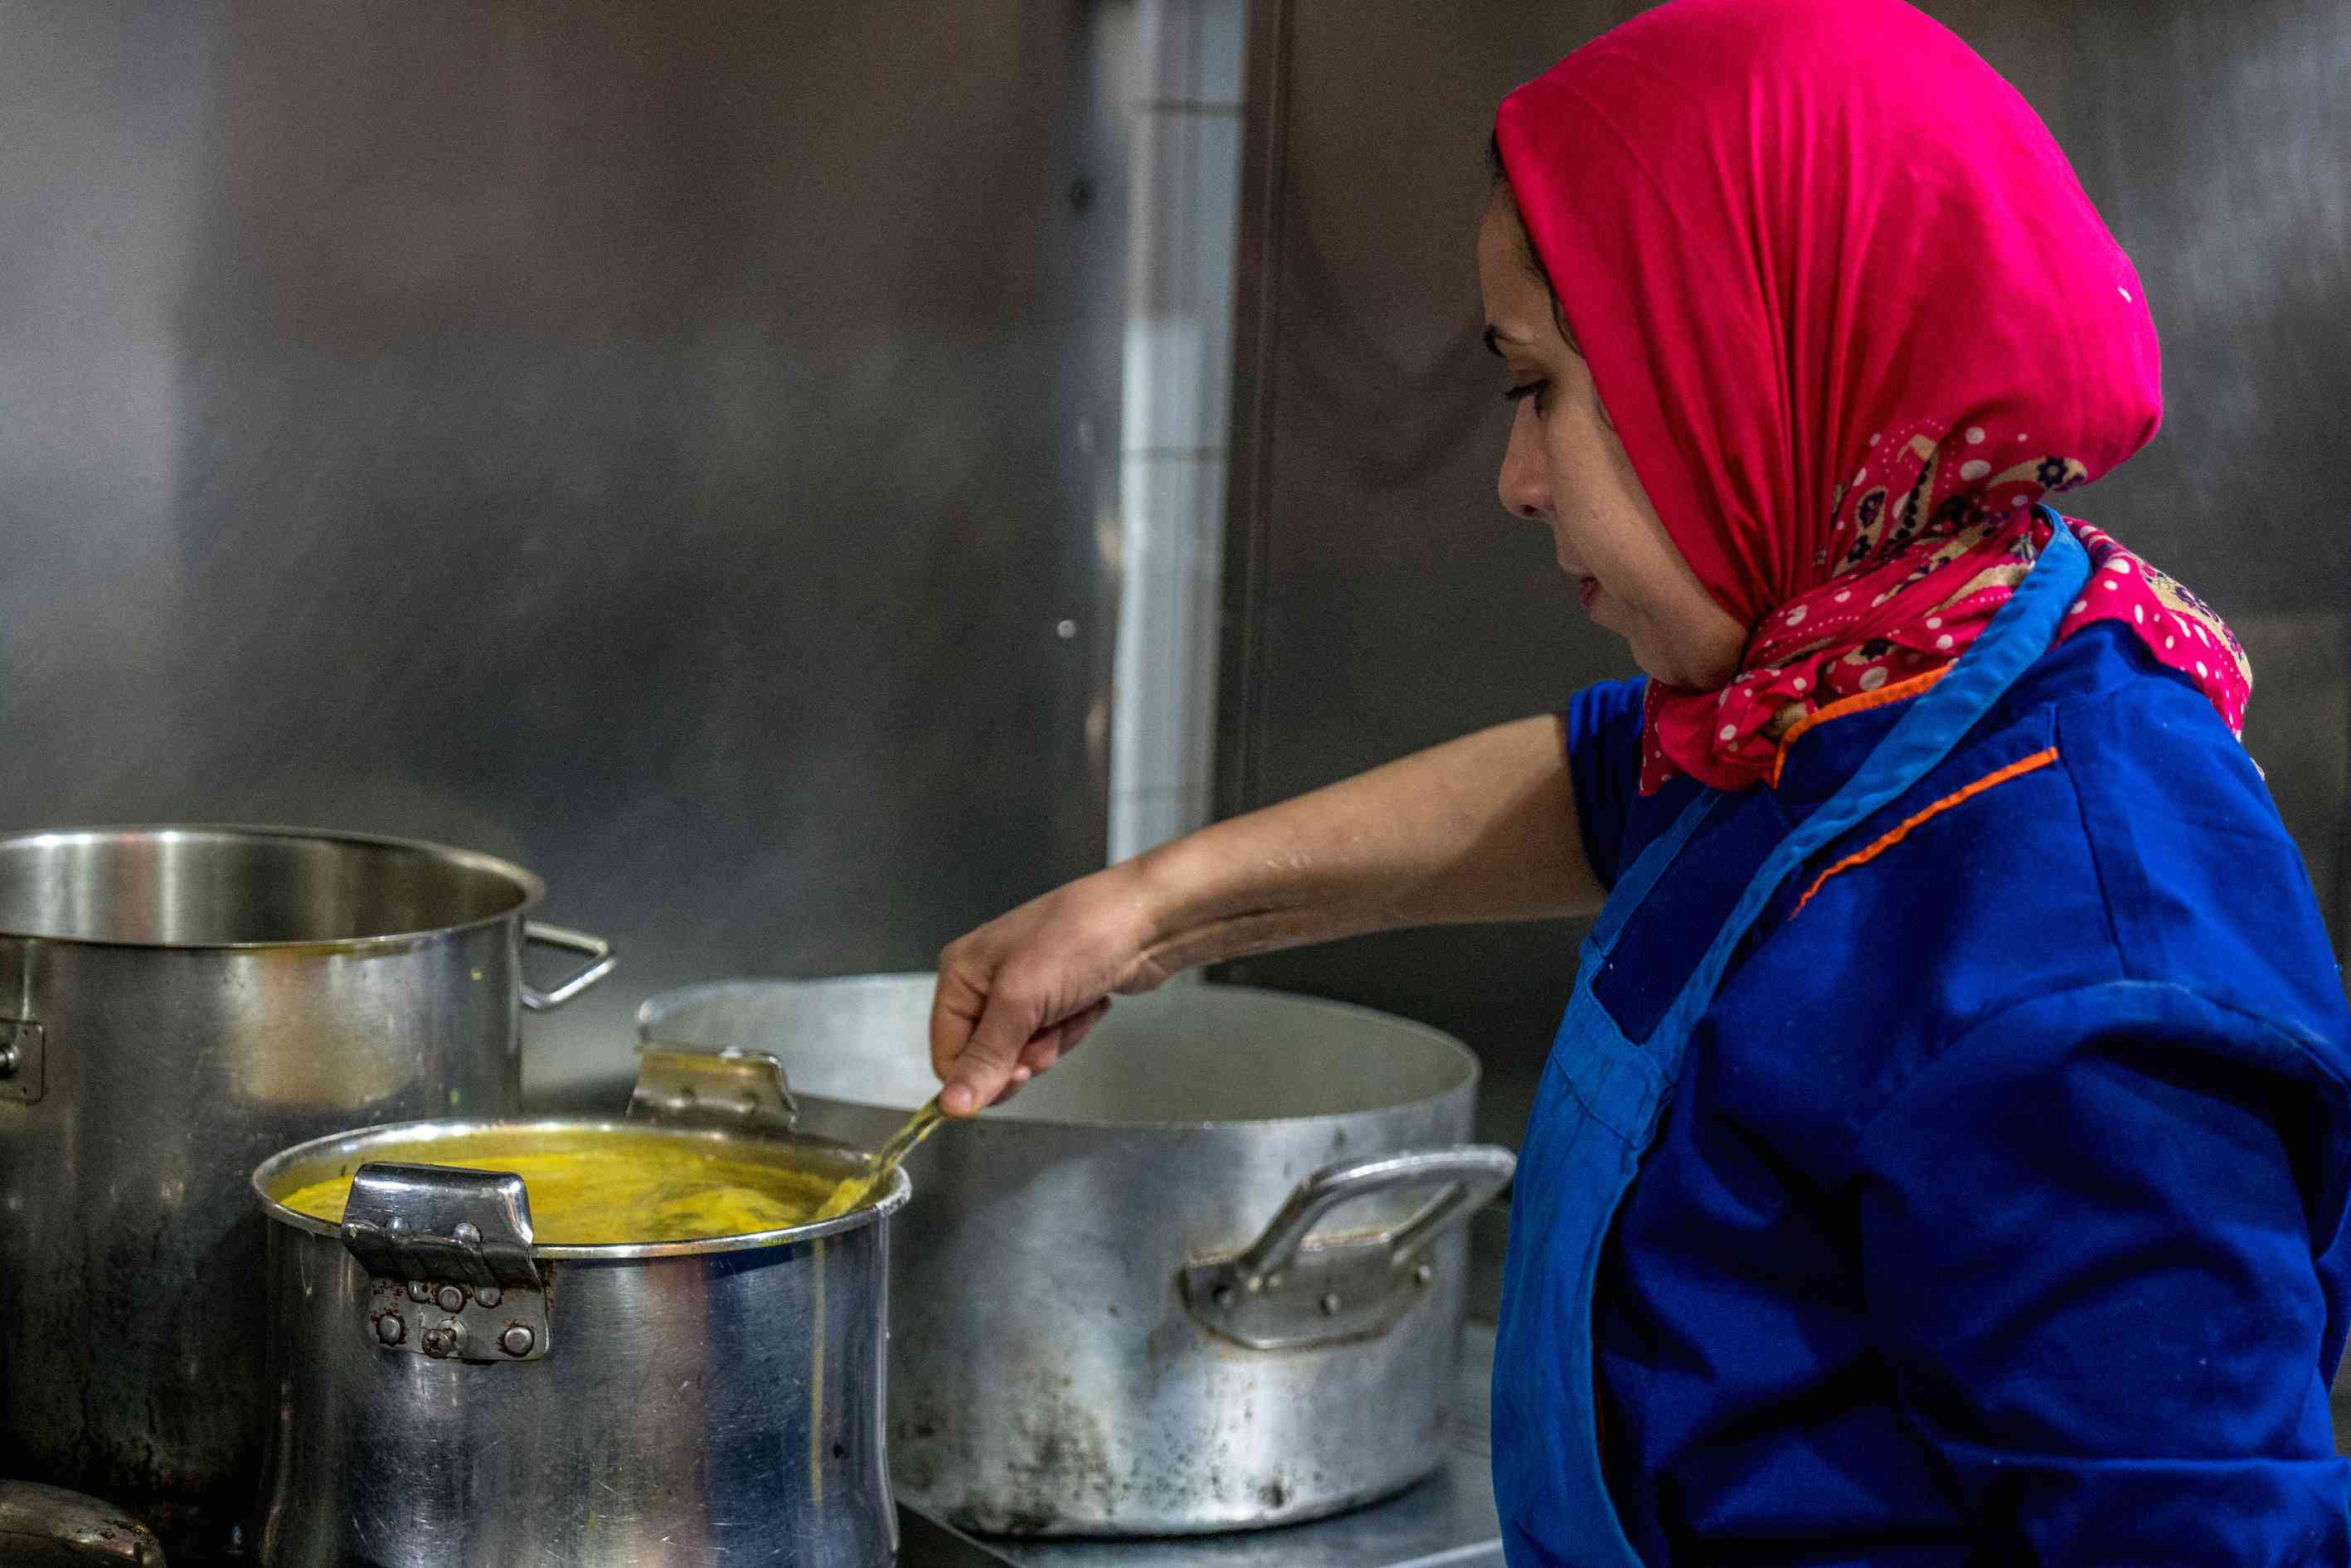 Moroccan lady stirring a cooking pot